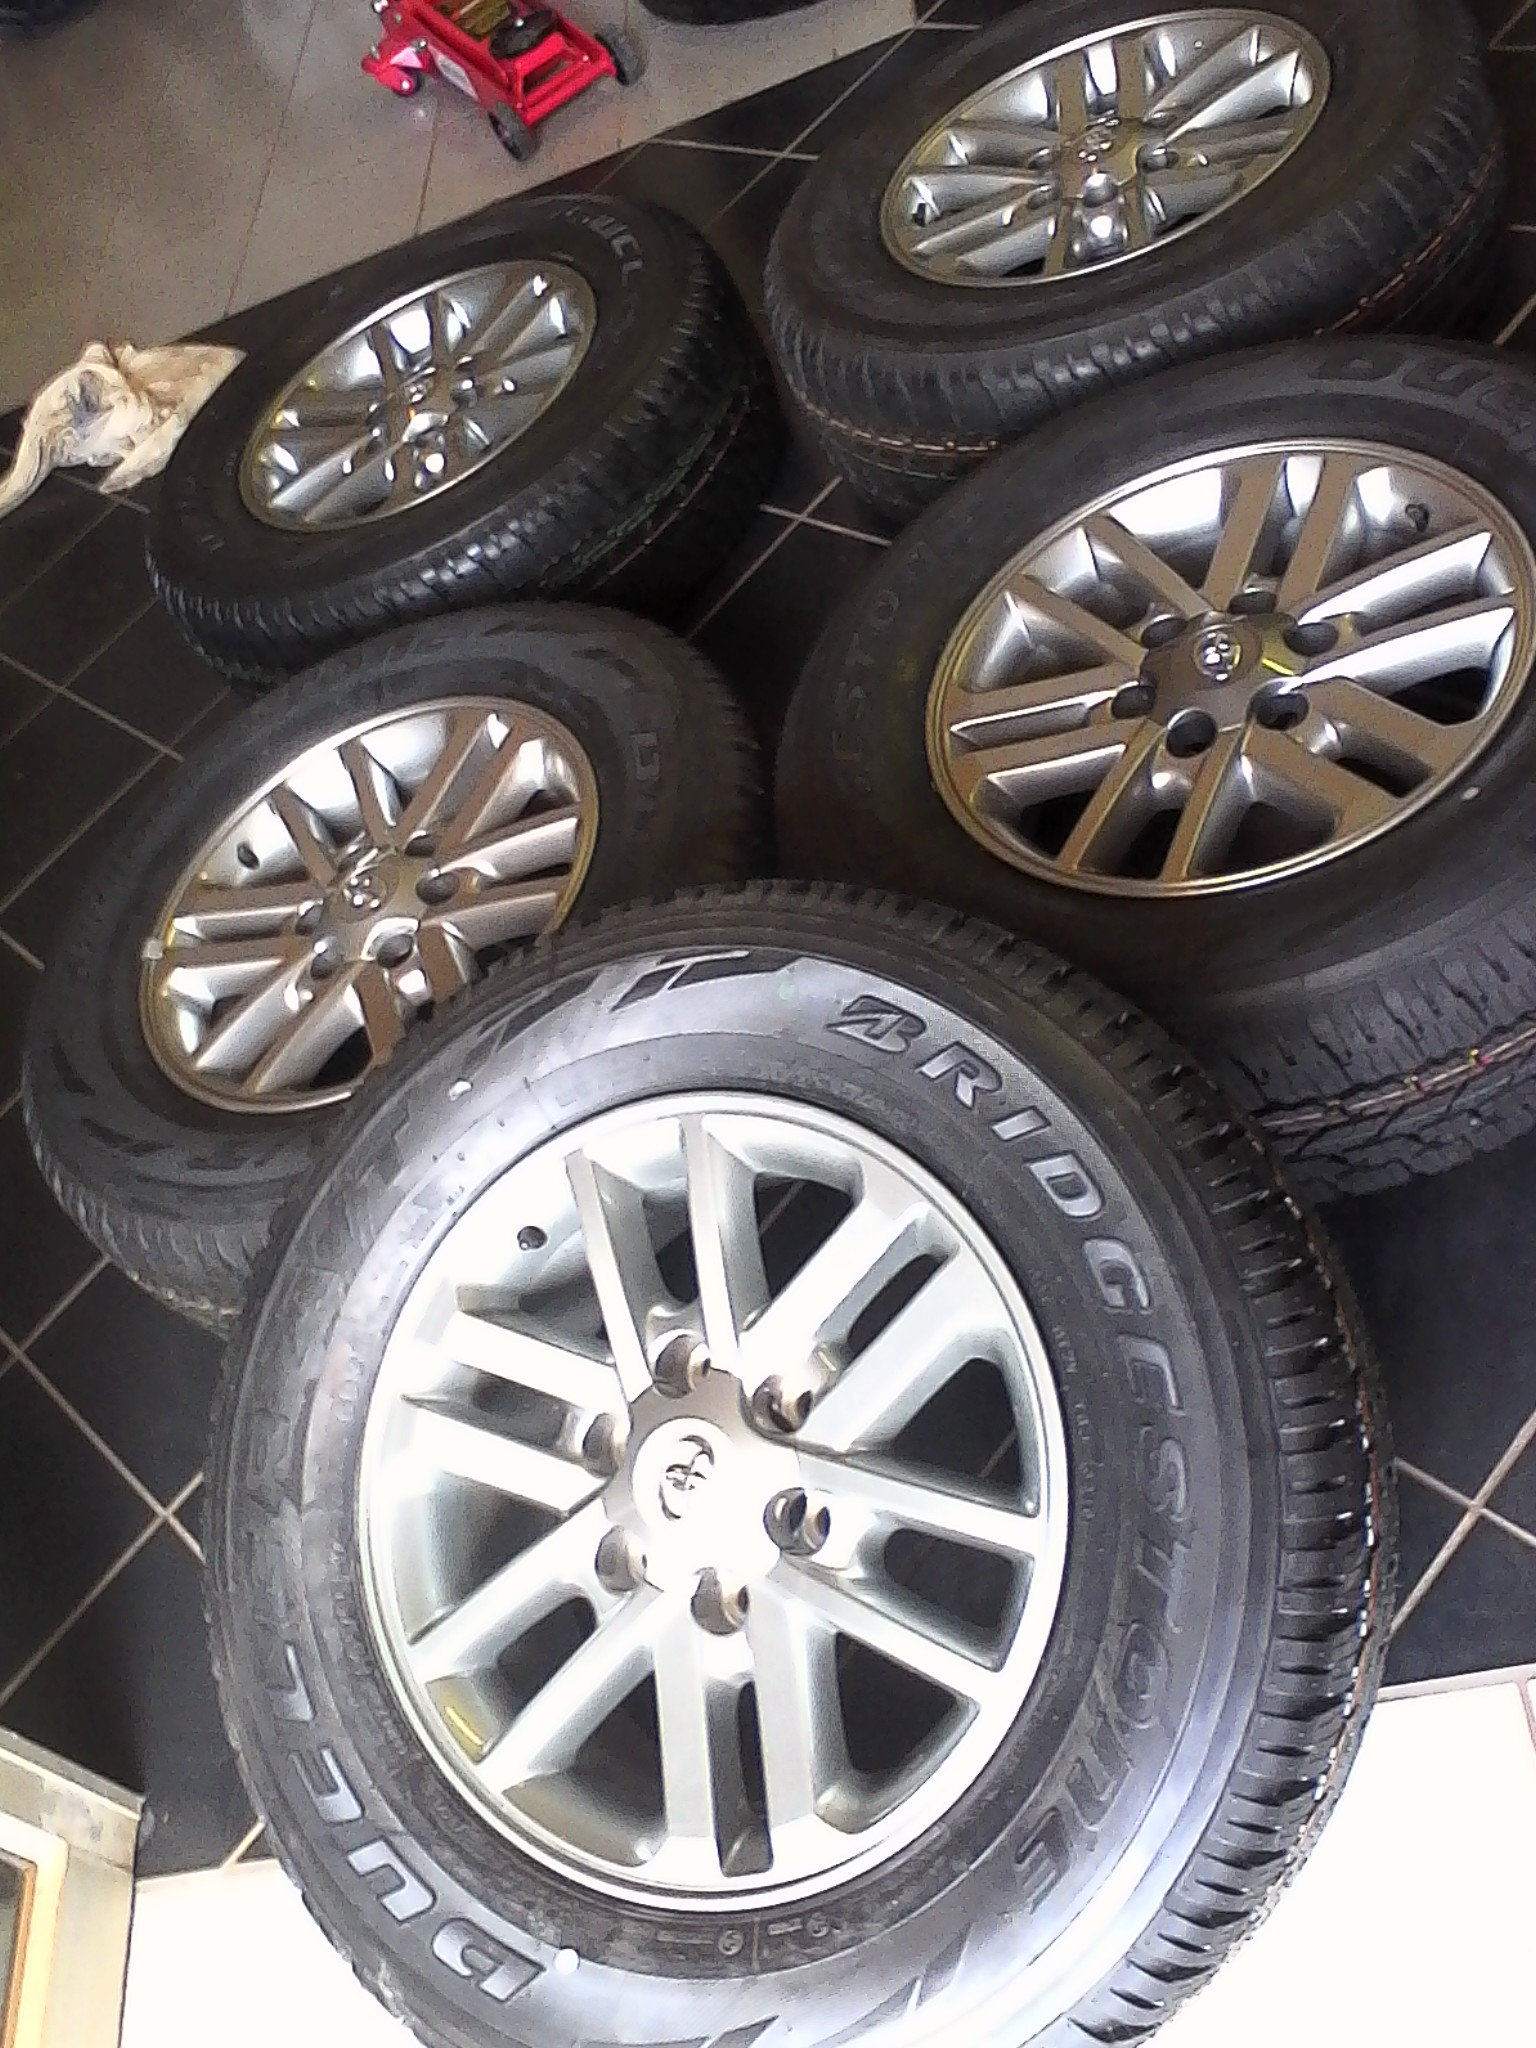 Toyota hilux fortuner 17'' legend 45 daker grey mags with new tyres 265/65/17 brigestone dueller A/T combo set 4x r11799